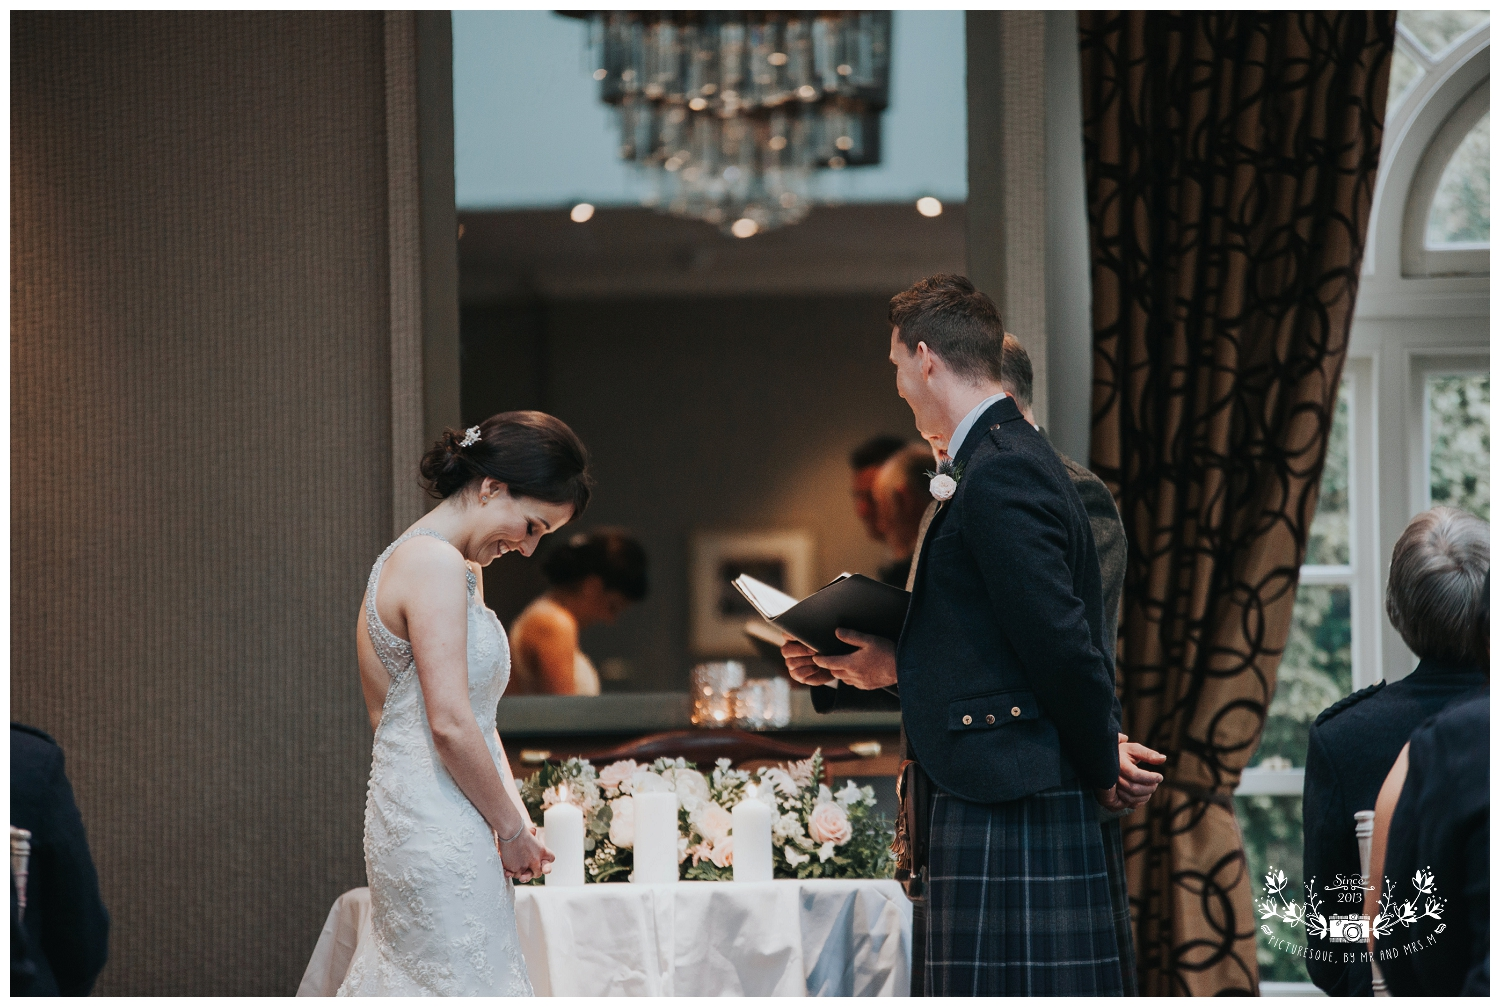 Balbirnie House Wedding, Picturesque by Mr and Mrs M_0029.jpg